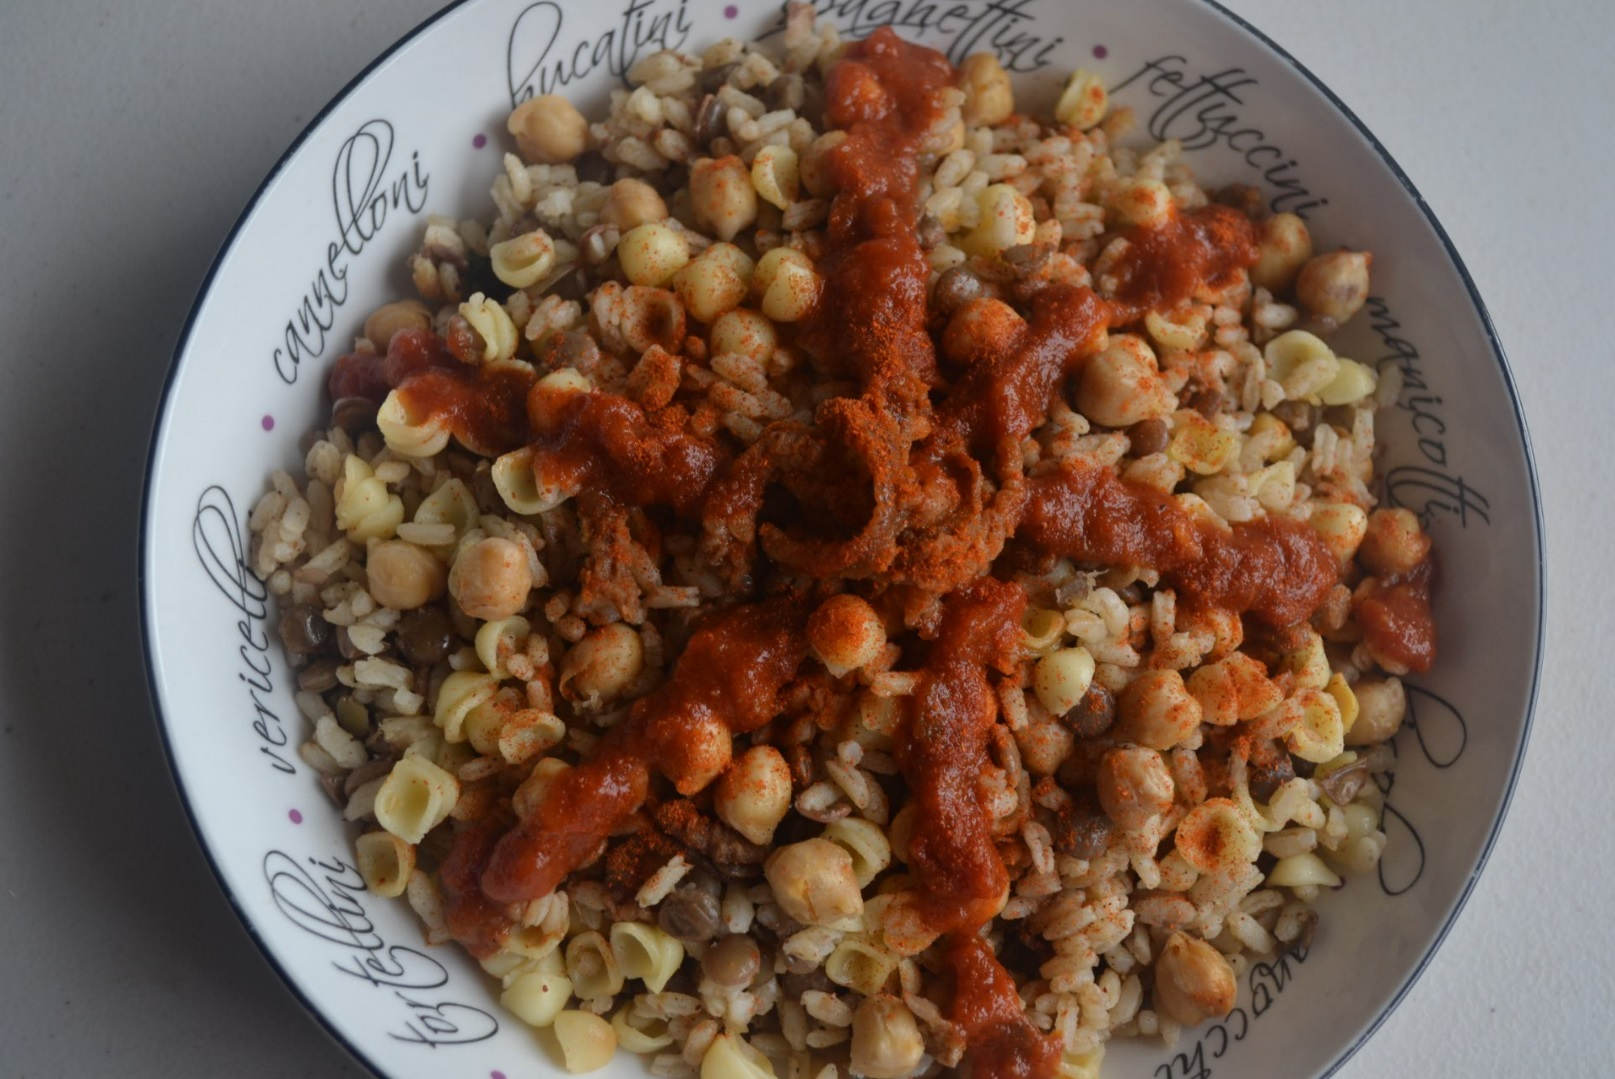 Koshari how to make egypts national dish egyptian streets koshari is the ultimate egyptian comfort food whether its a family recipe or a bustling cairo street vendor koshari never disappoints forumfinder